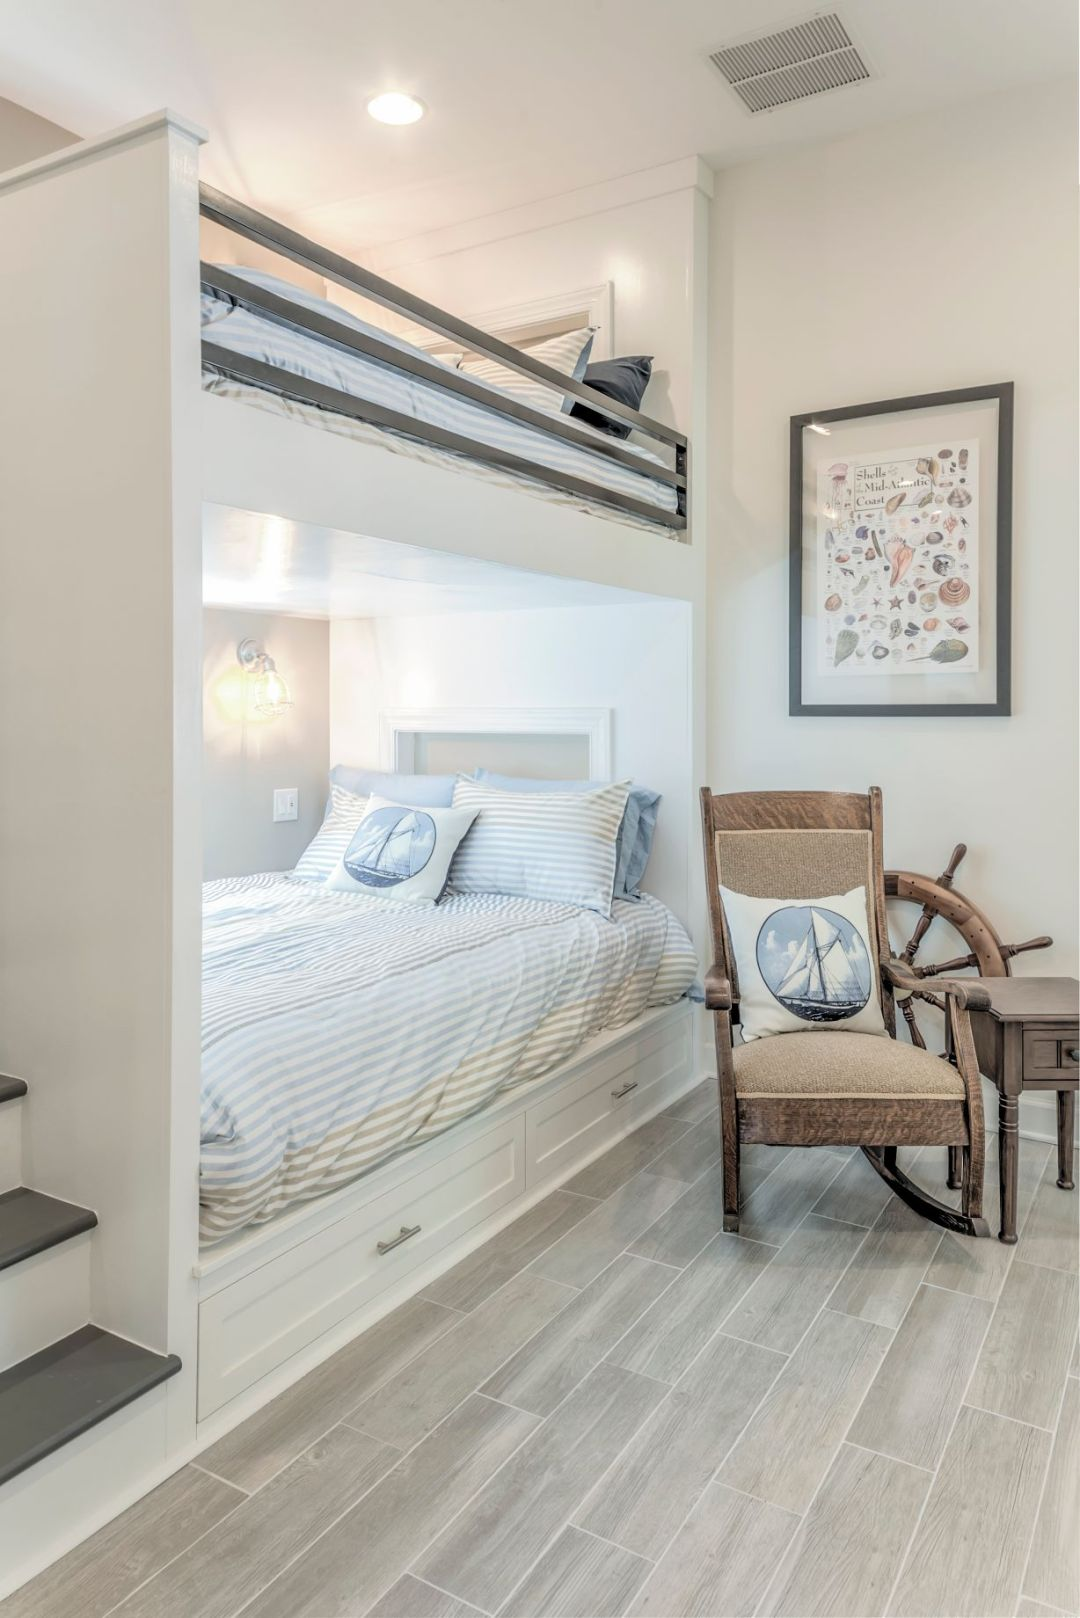 Addition in Juniper Court, Ocean Pines MD - Kids Bedroom with White Wall Paint and Cozy Rocking Chair for Bedtime Stories